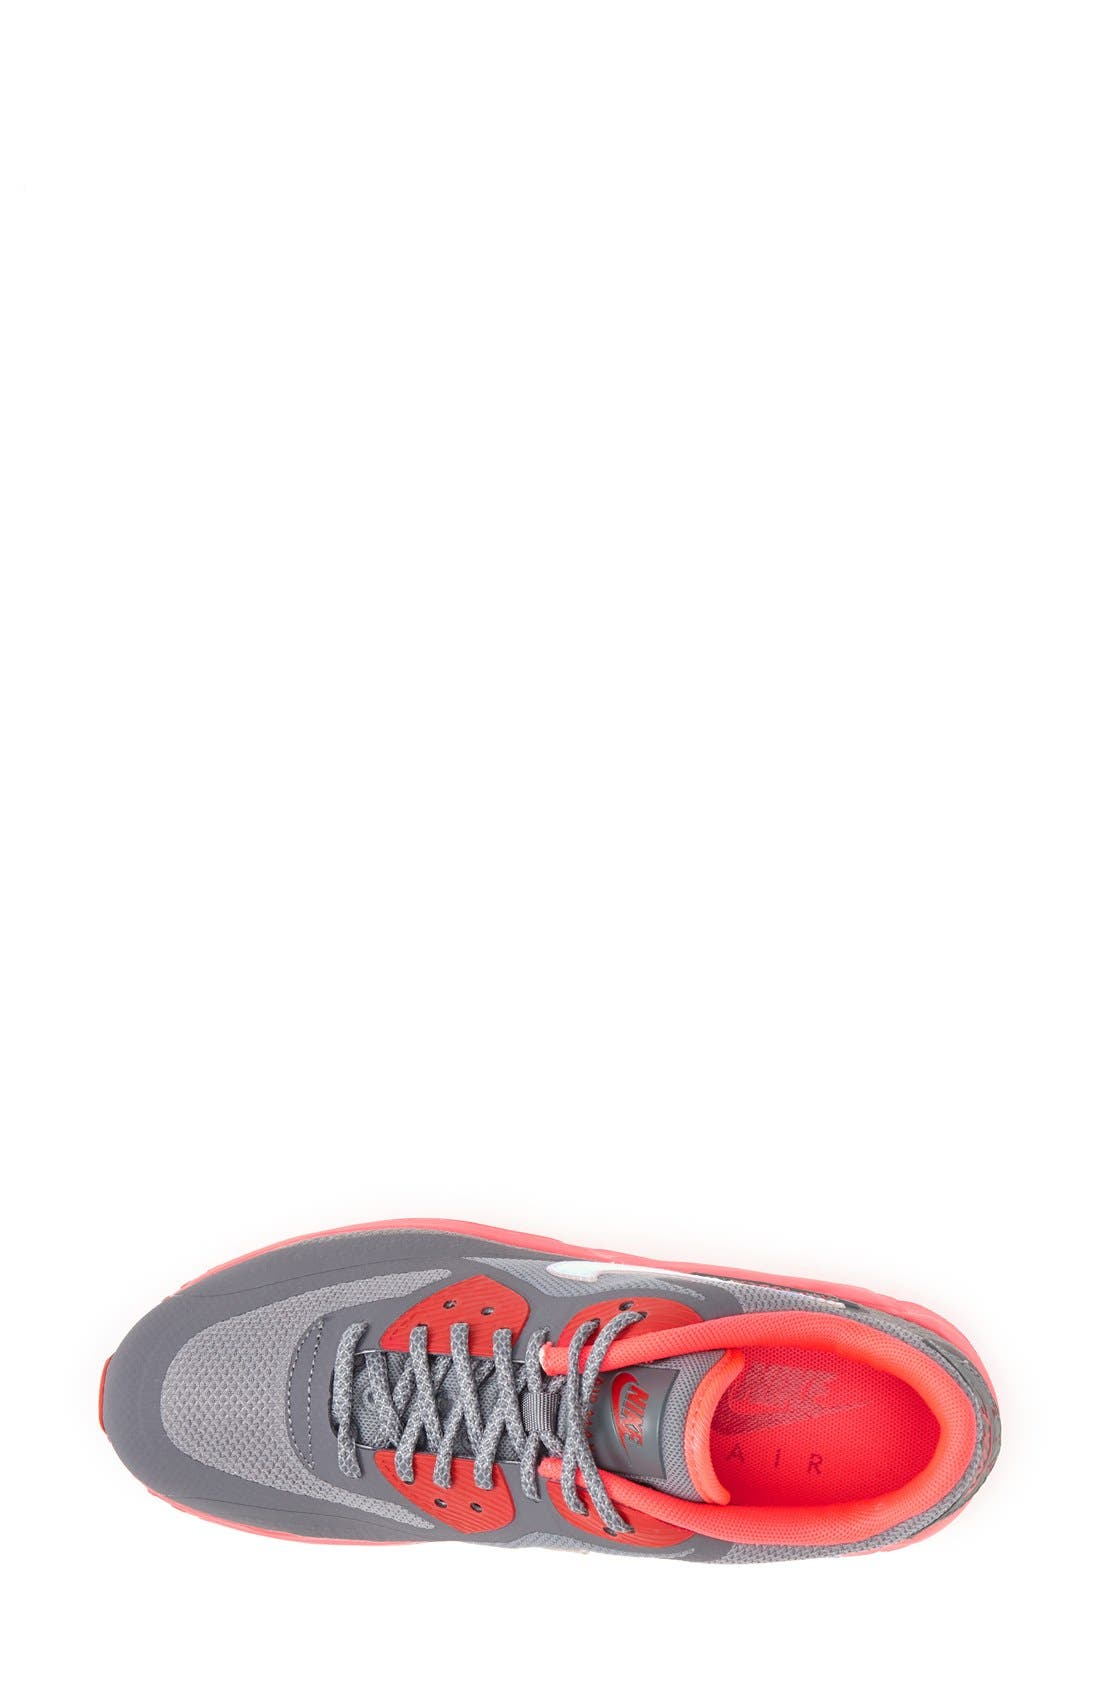 Alternate Image 3  - Nike 'Air Max Lunar 90' Sneaker (Women)